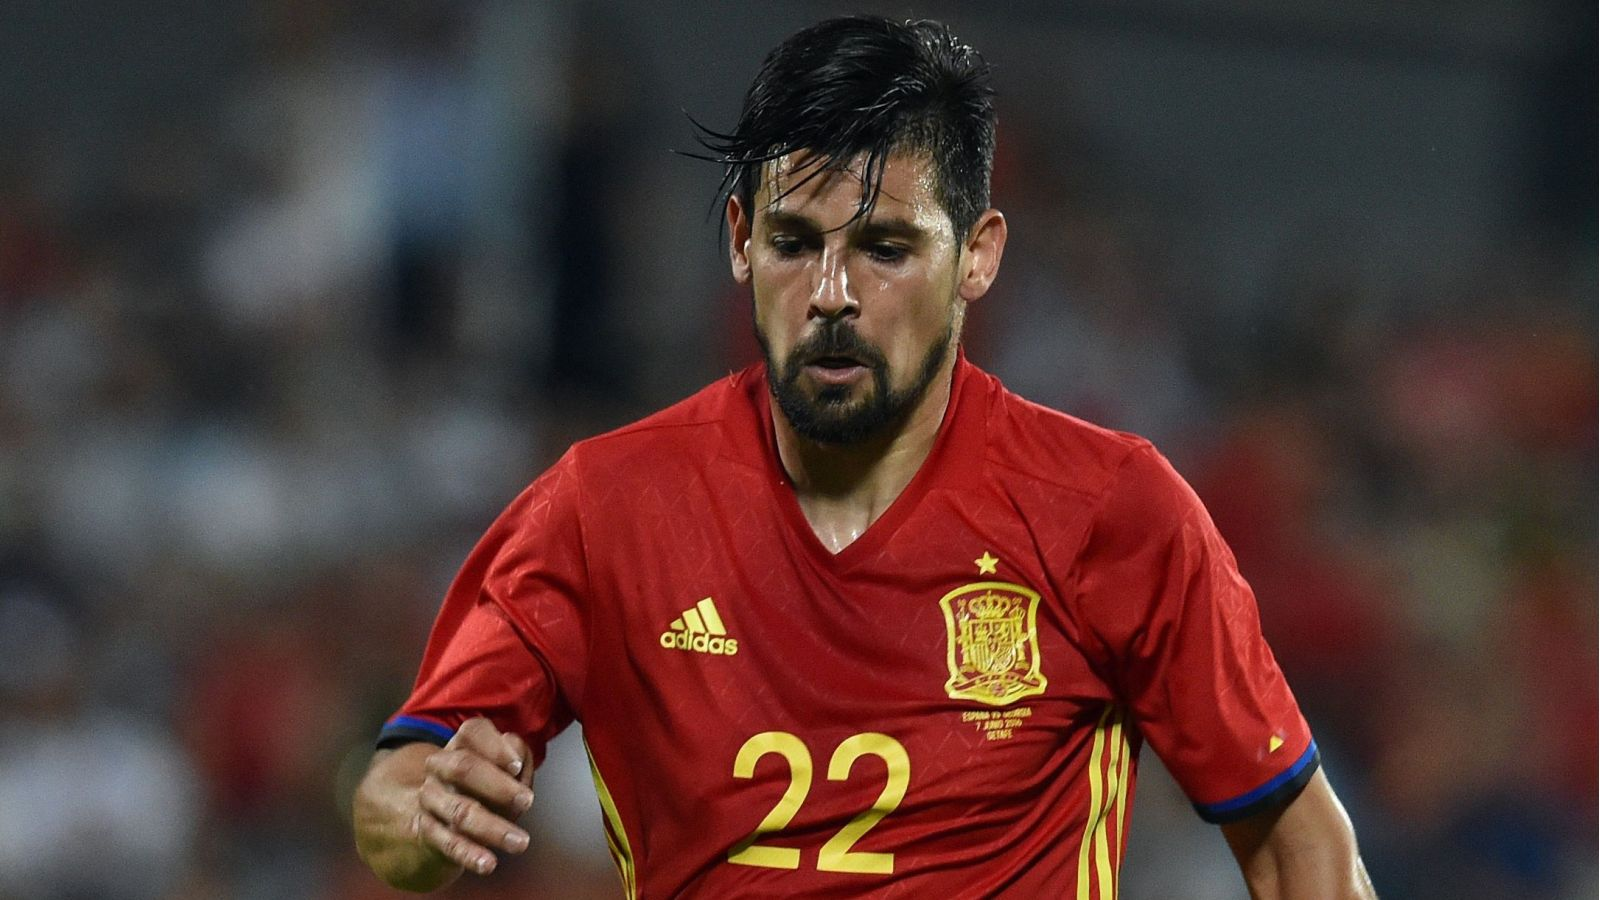 New City boss Guardiola targets Celta Vigo forward Nolito